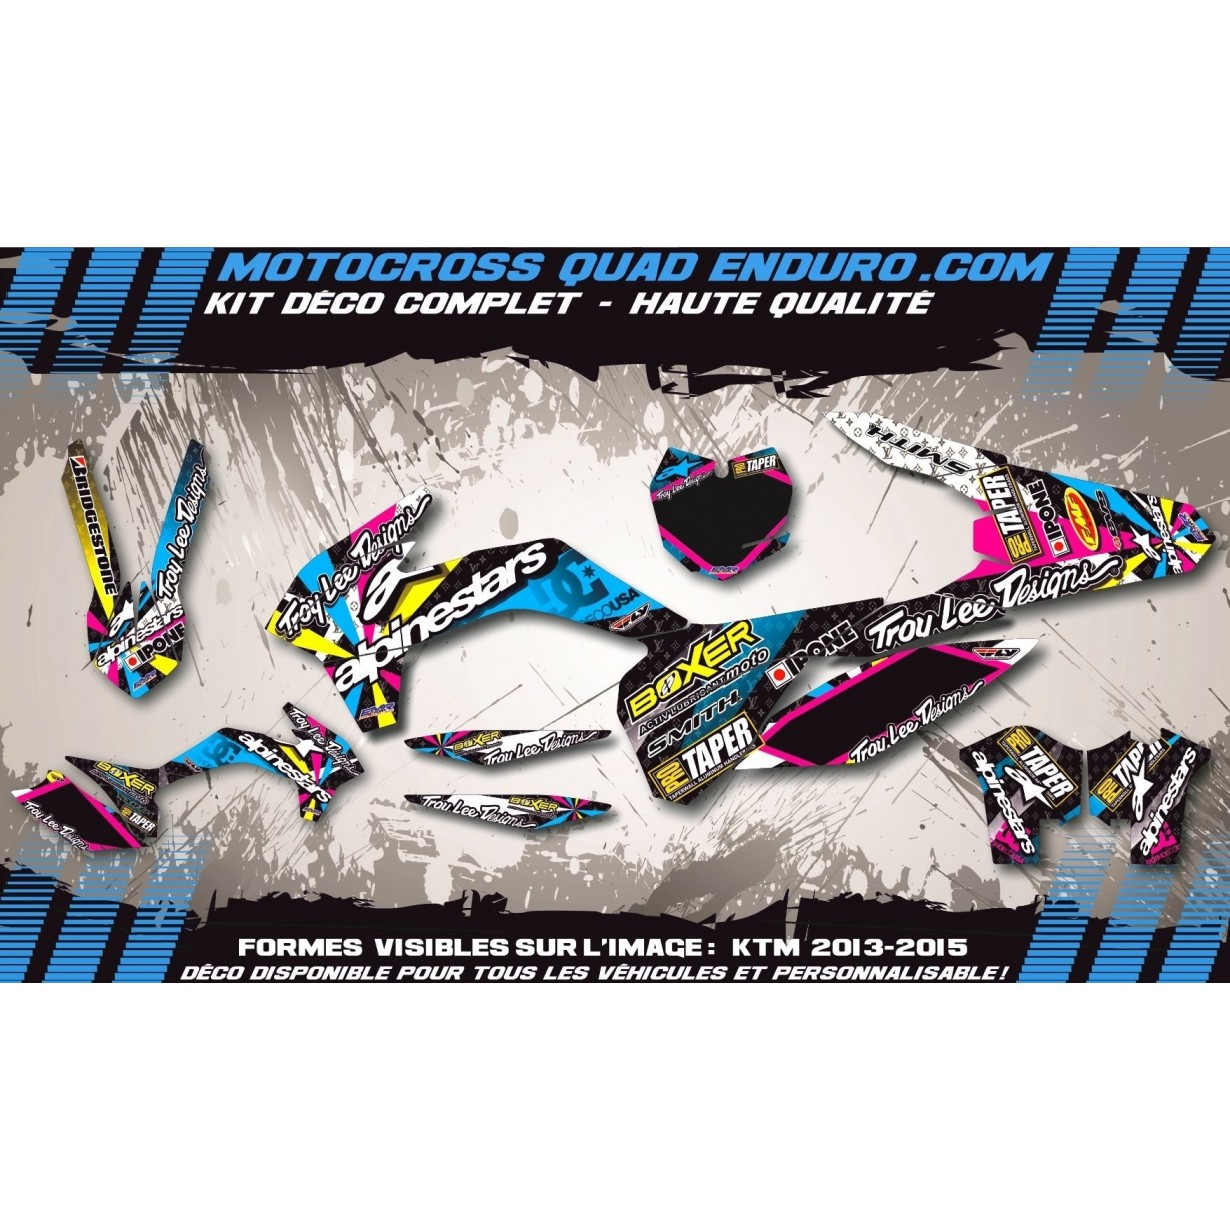 KIT DÉCO Perso EXC 04 ALPINESTAR MA4A